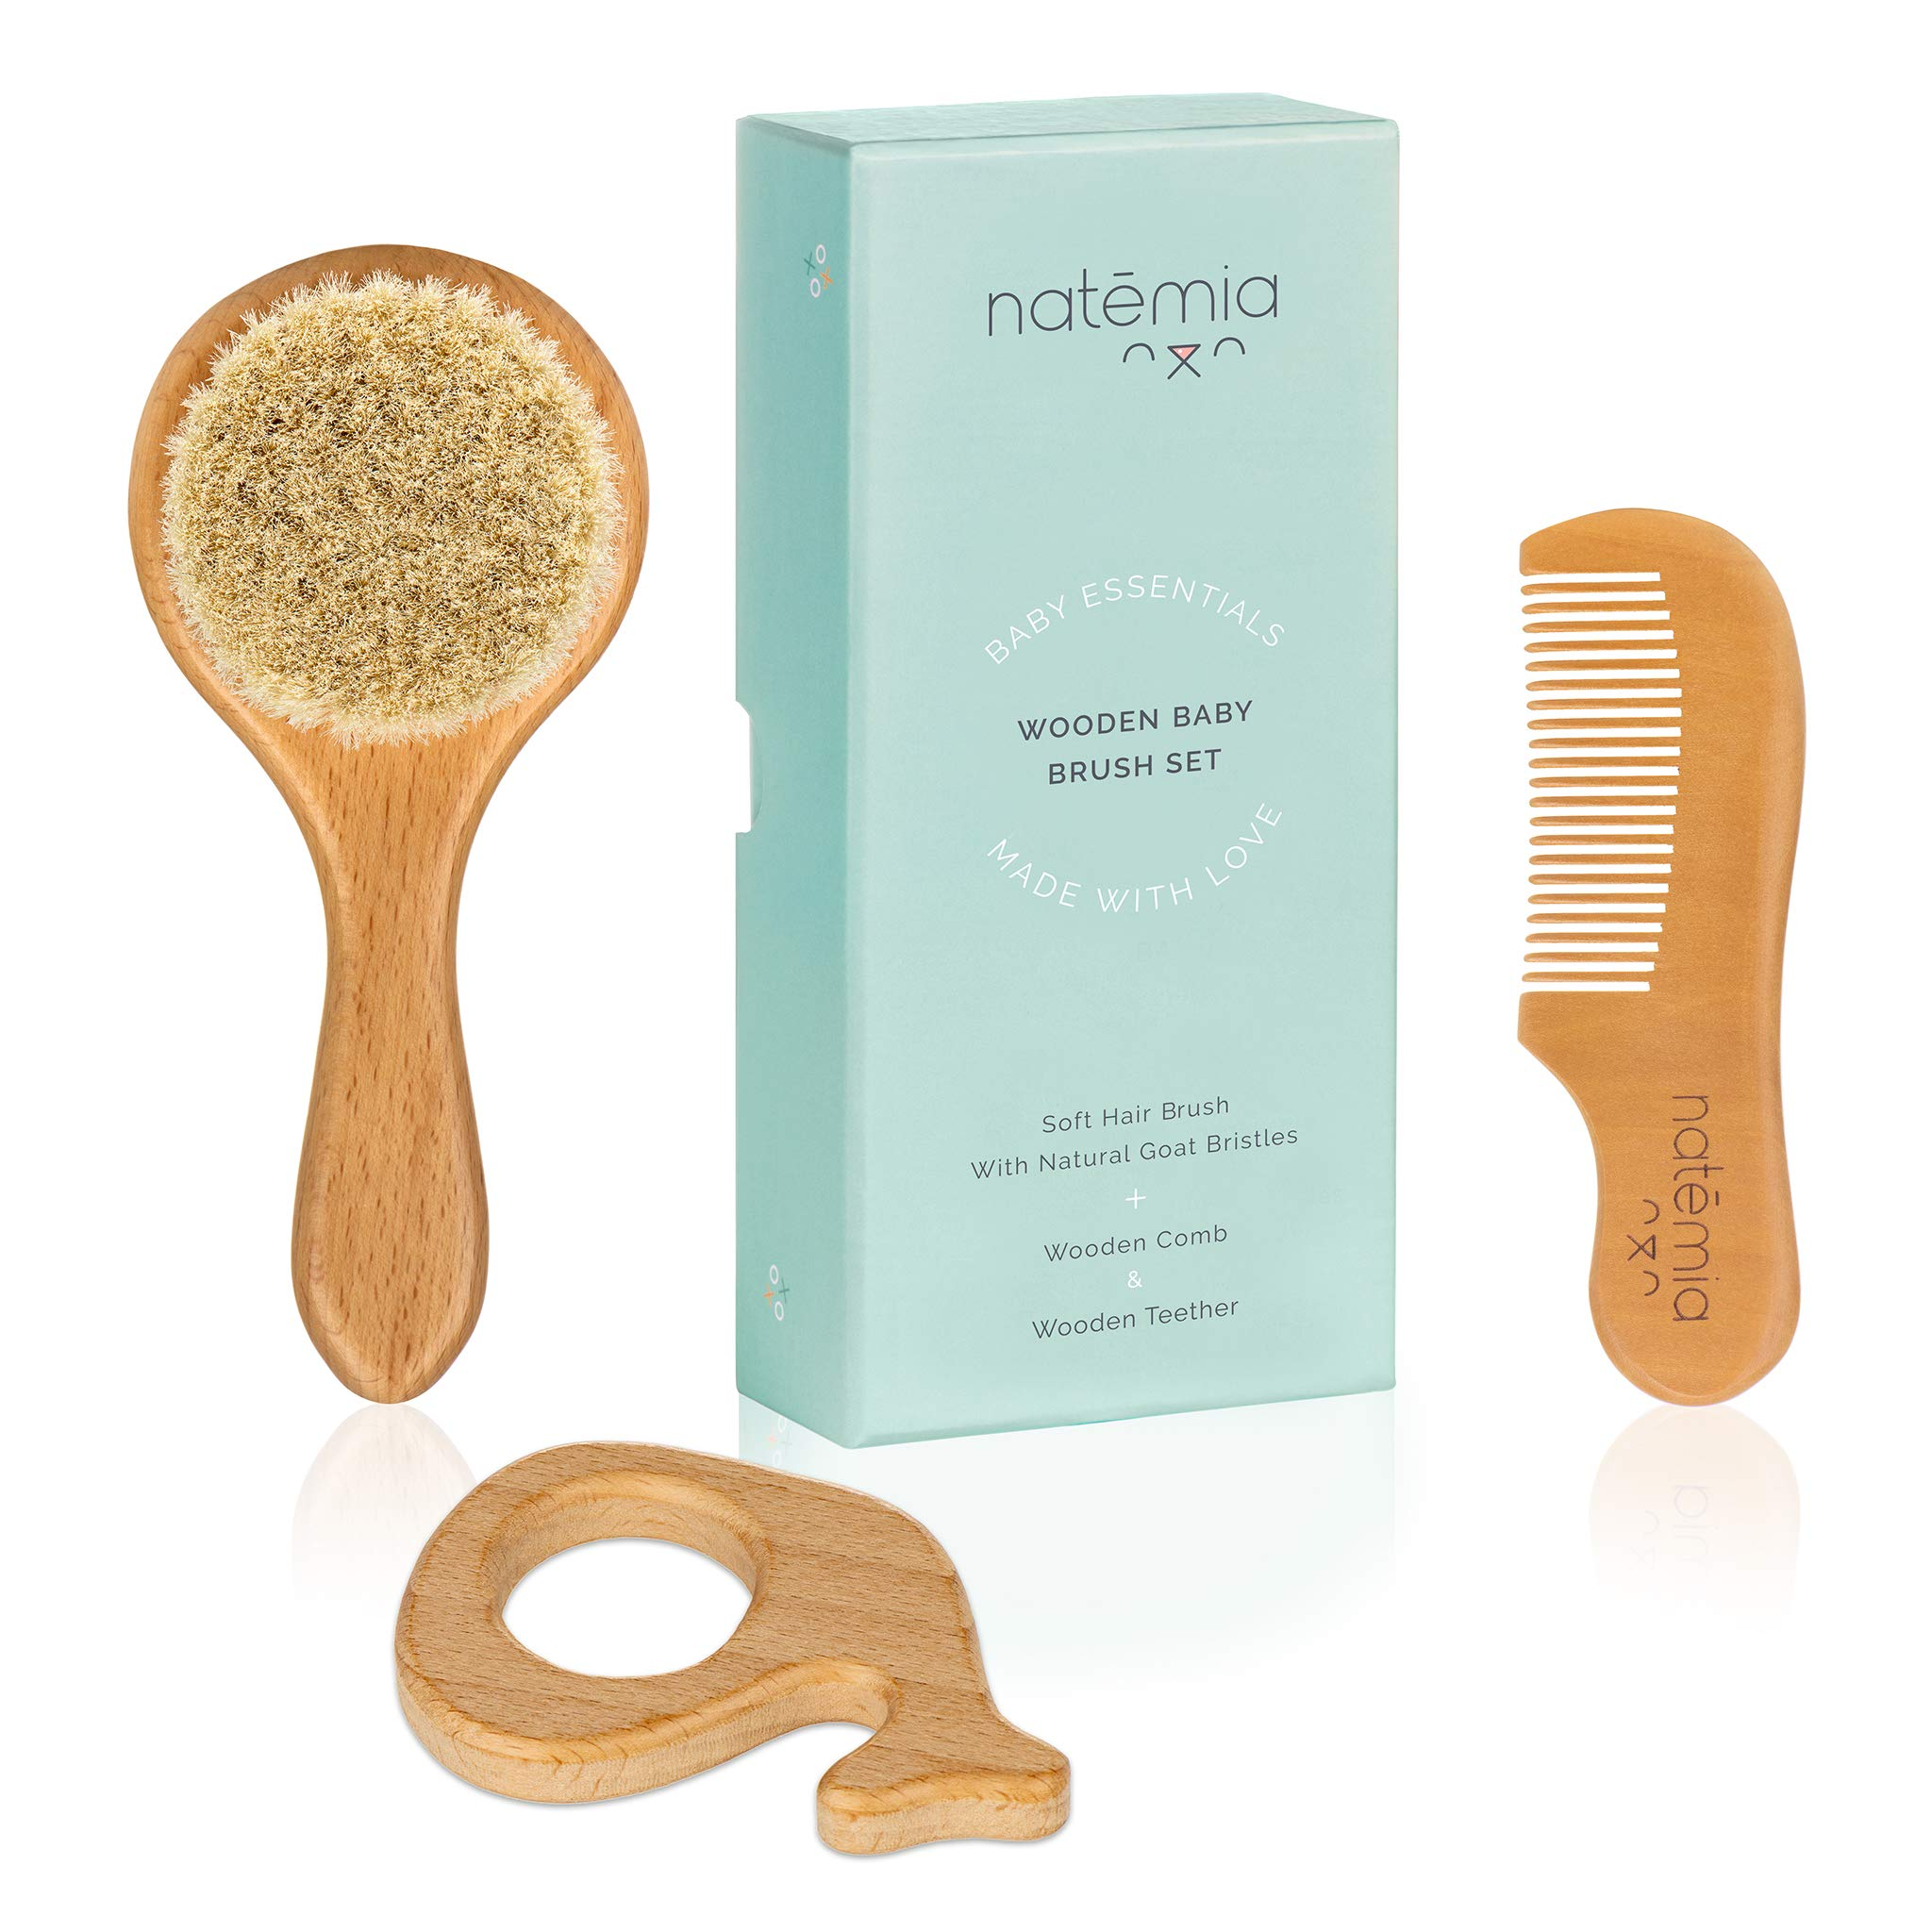 Natemia Wooden Baby Hair Brush and Teether Set for Newborns and Toddlers - Ideal for Cradle Cap by Natemia